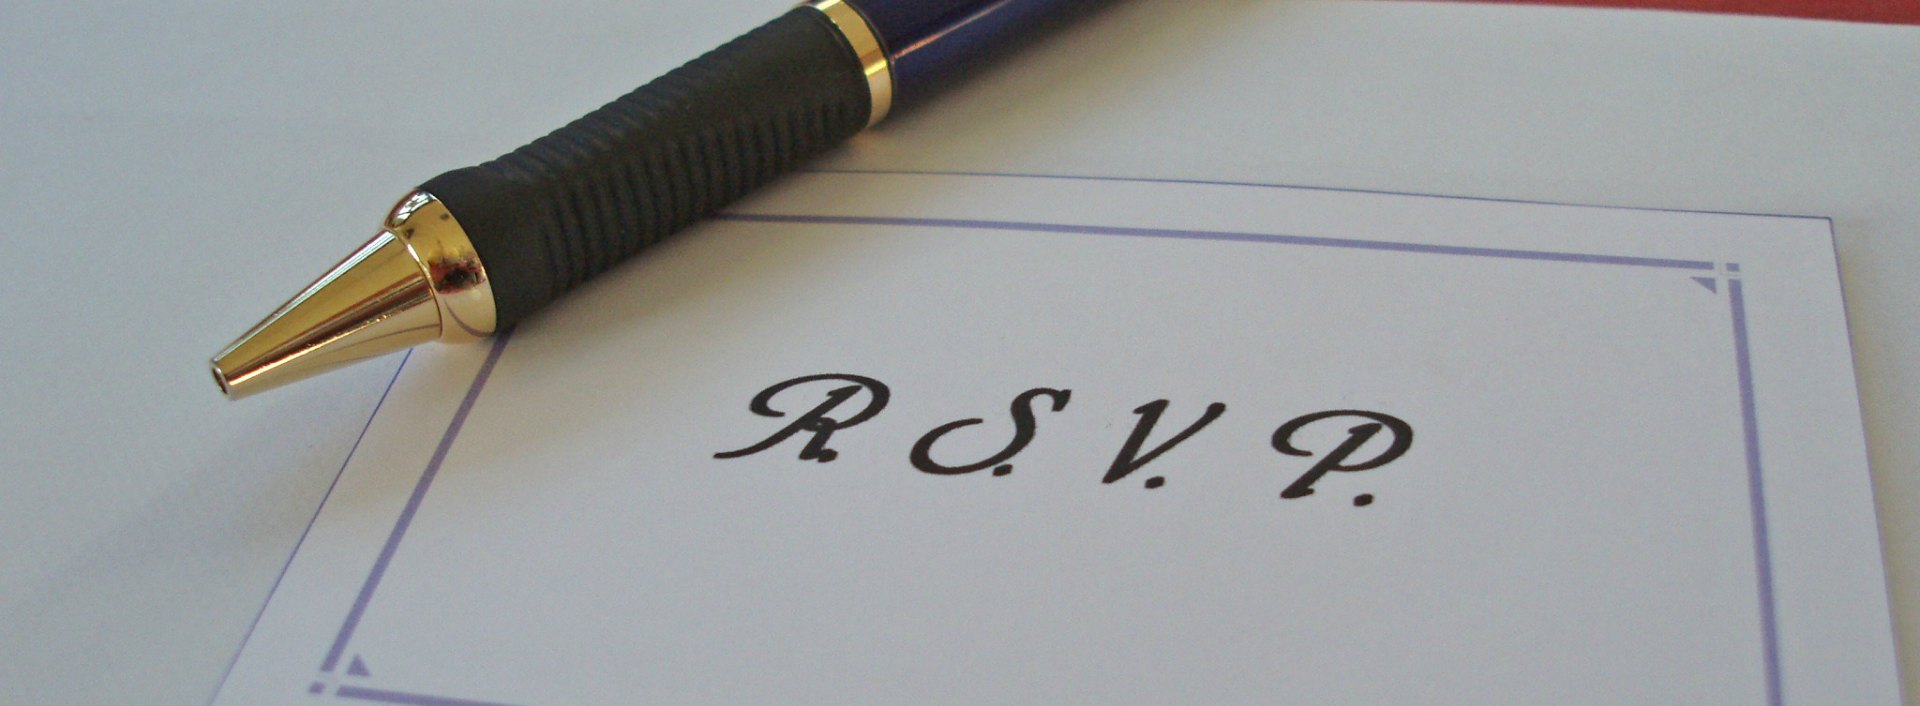 RSVP and other common abbreviations